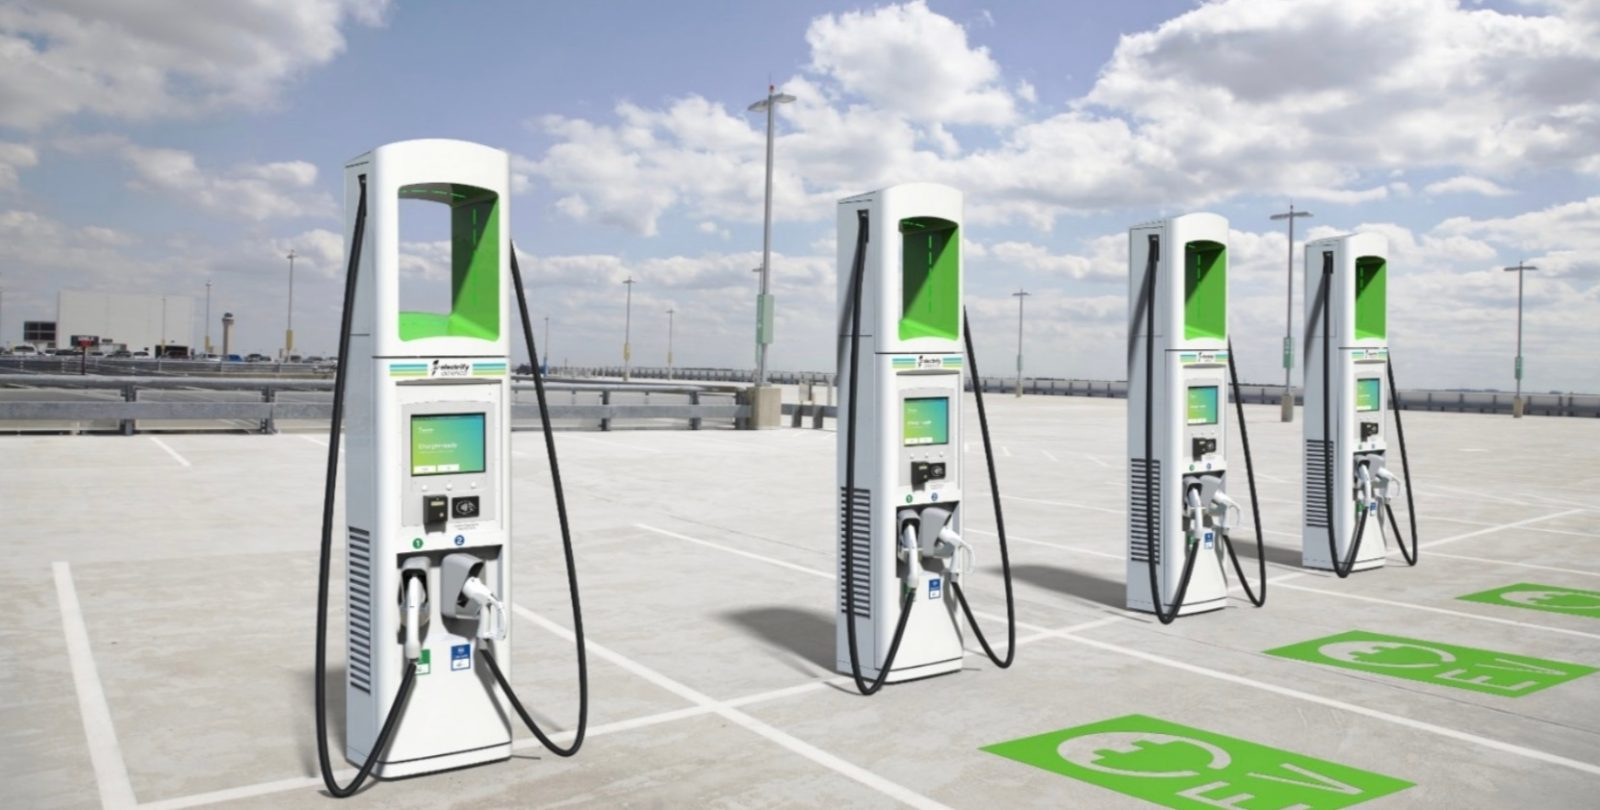 Electrify America completes 400 EV charging stations — about twice as fast as Tesla Supercharger rollout